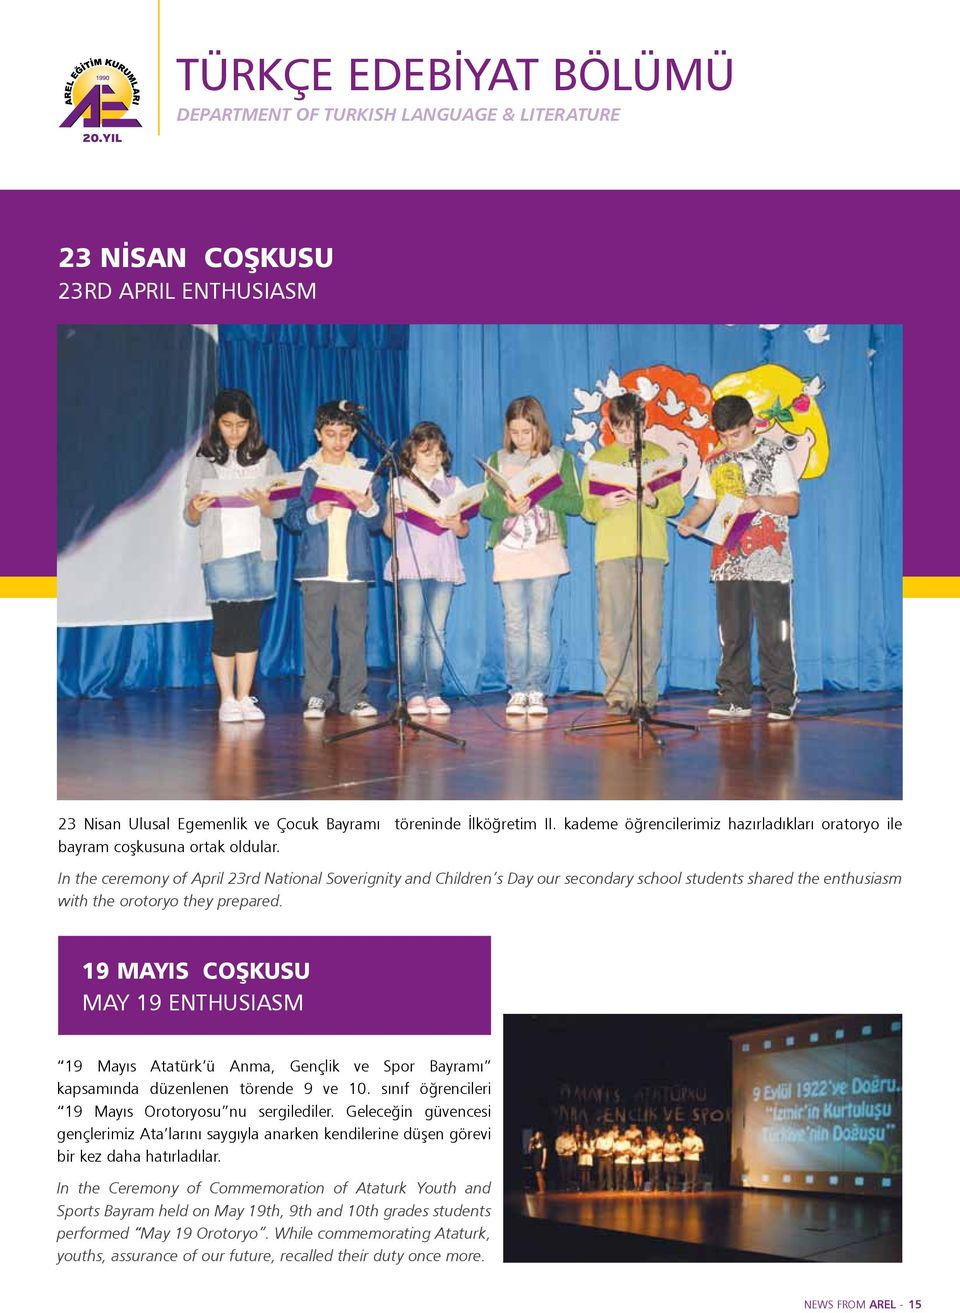 In the ceremony of April 23rd National Soverignity and Children s Day our secondary school students shared the enthusiasm with the orotoryo they prepared.